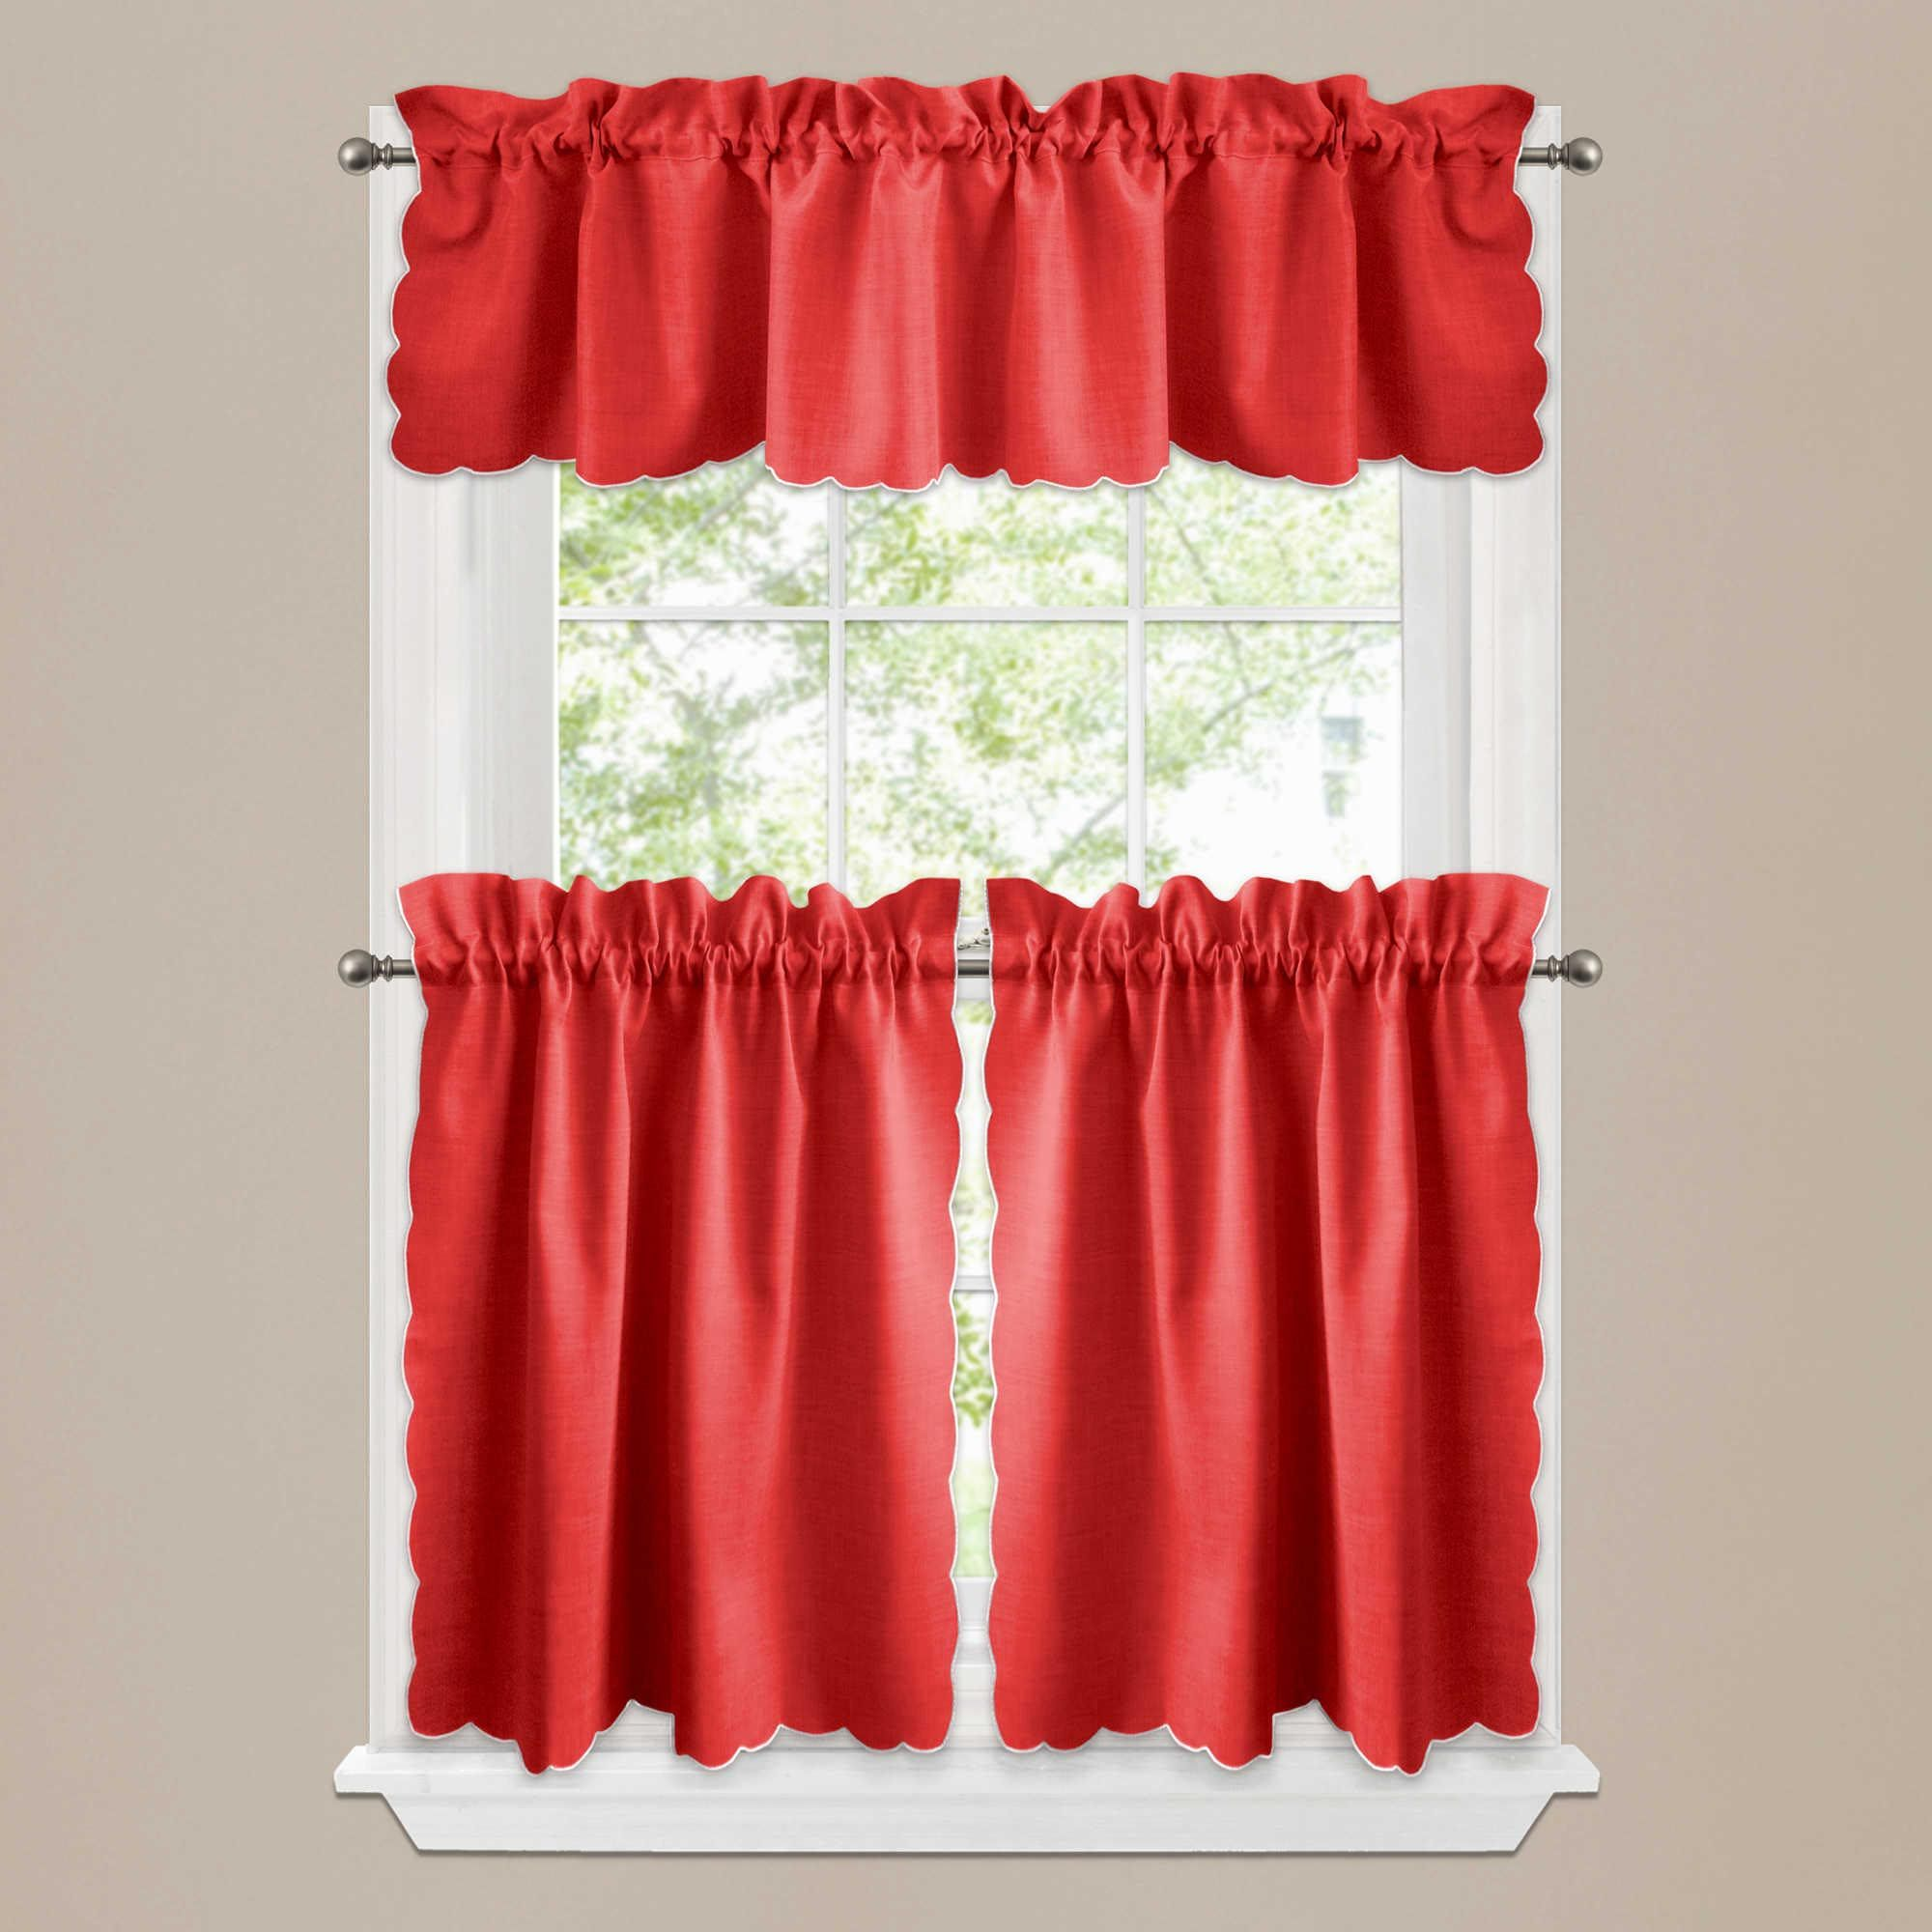 Red Kitchen Curtains and Valances | Valances | Pinterest | Red ...